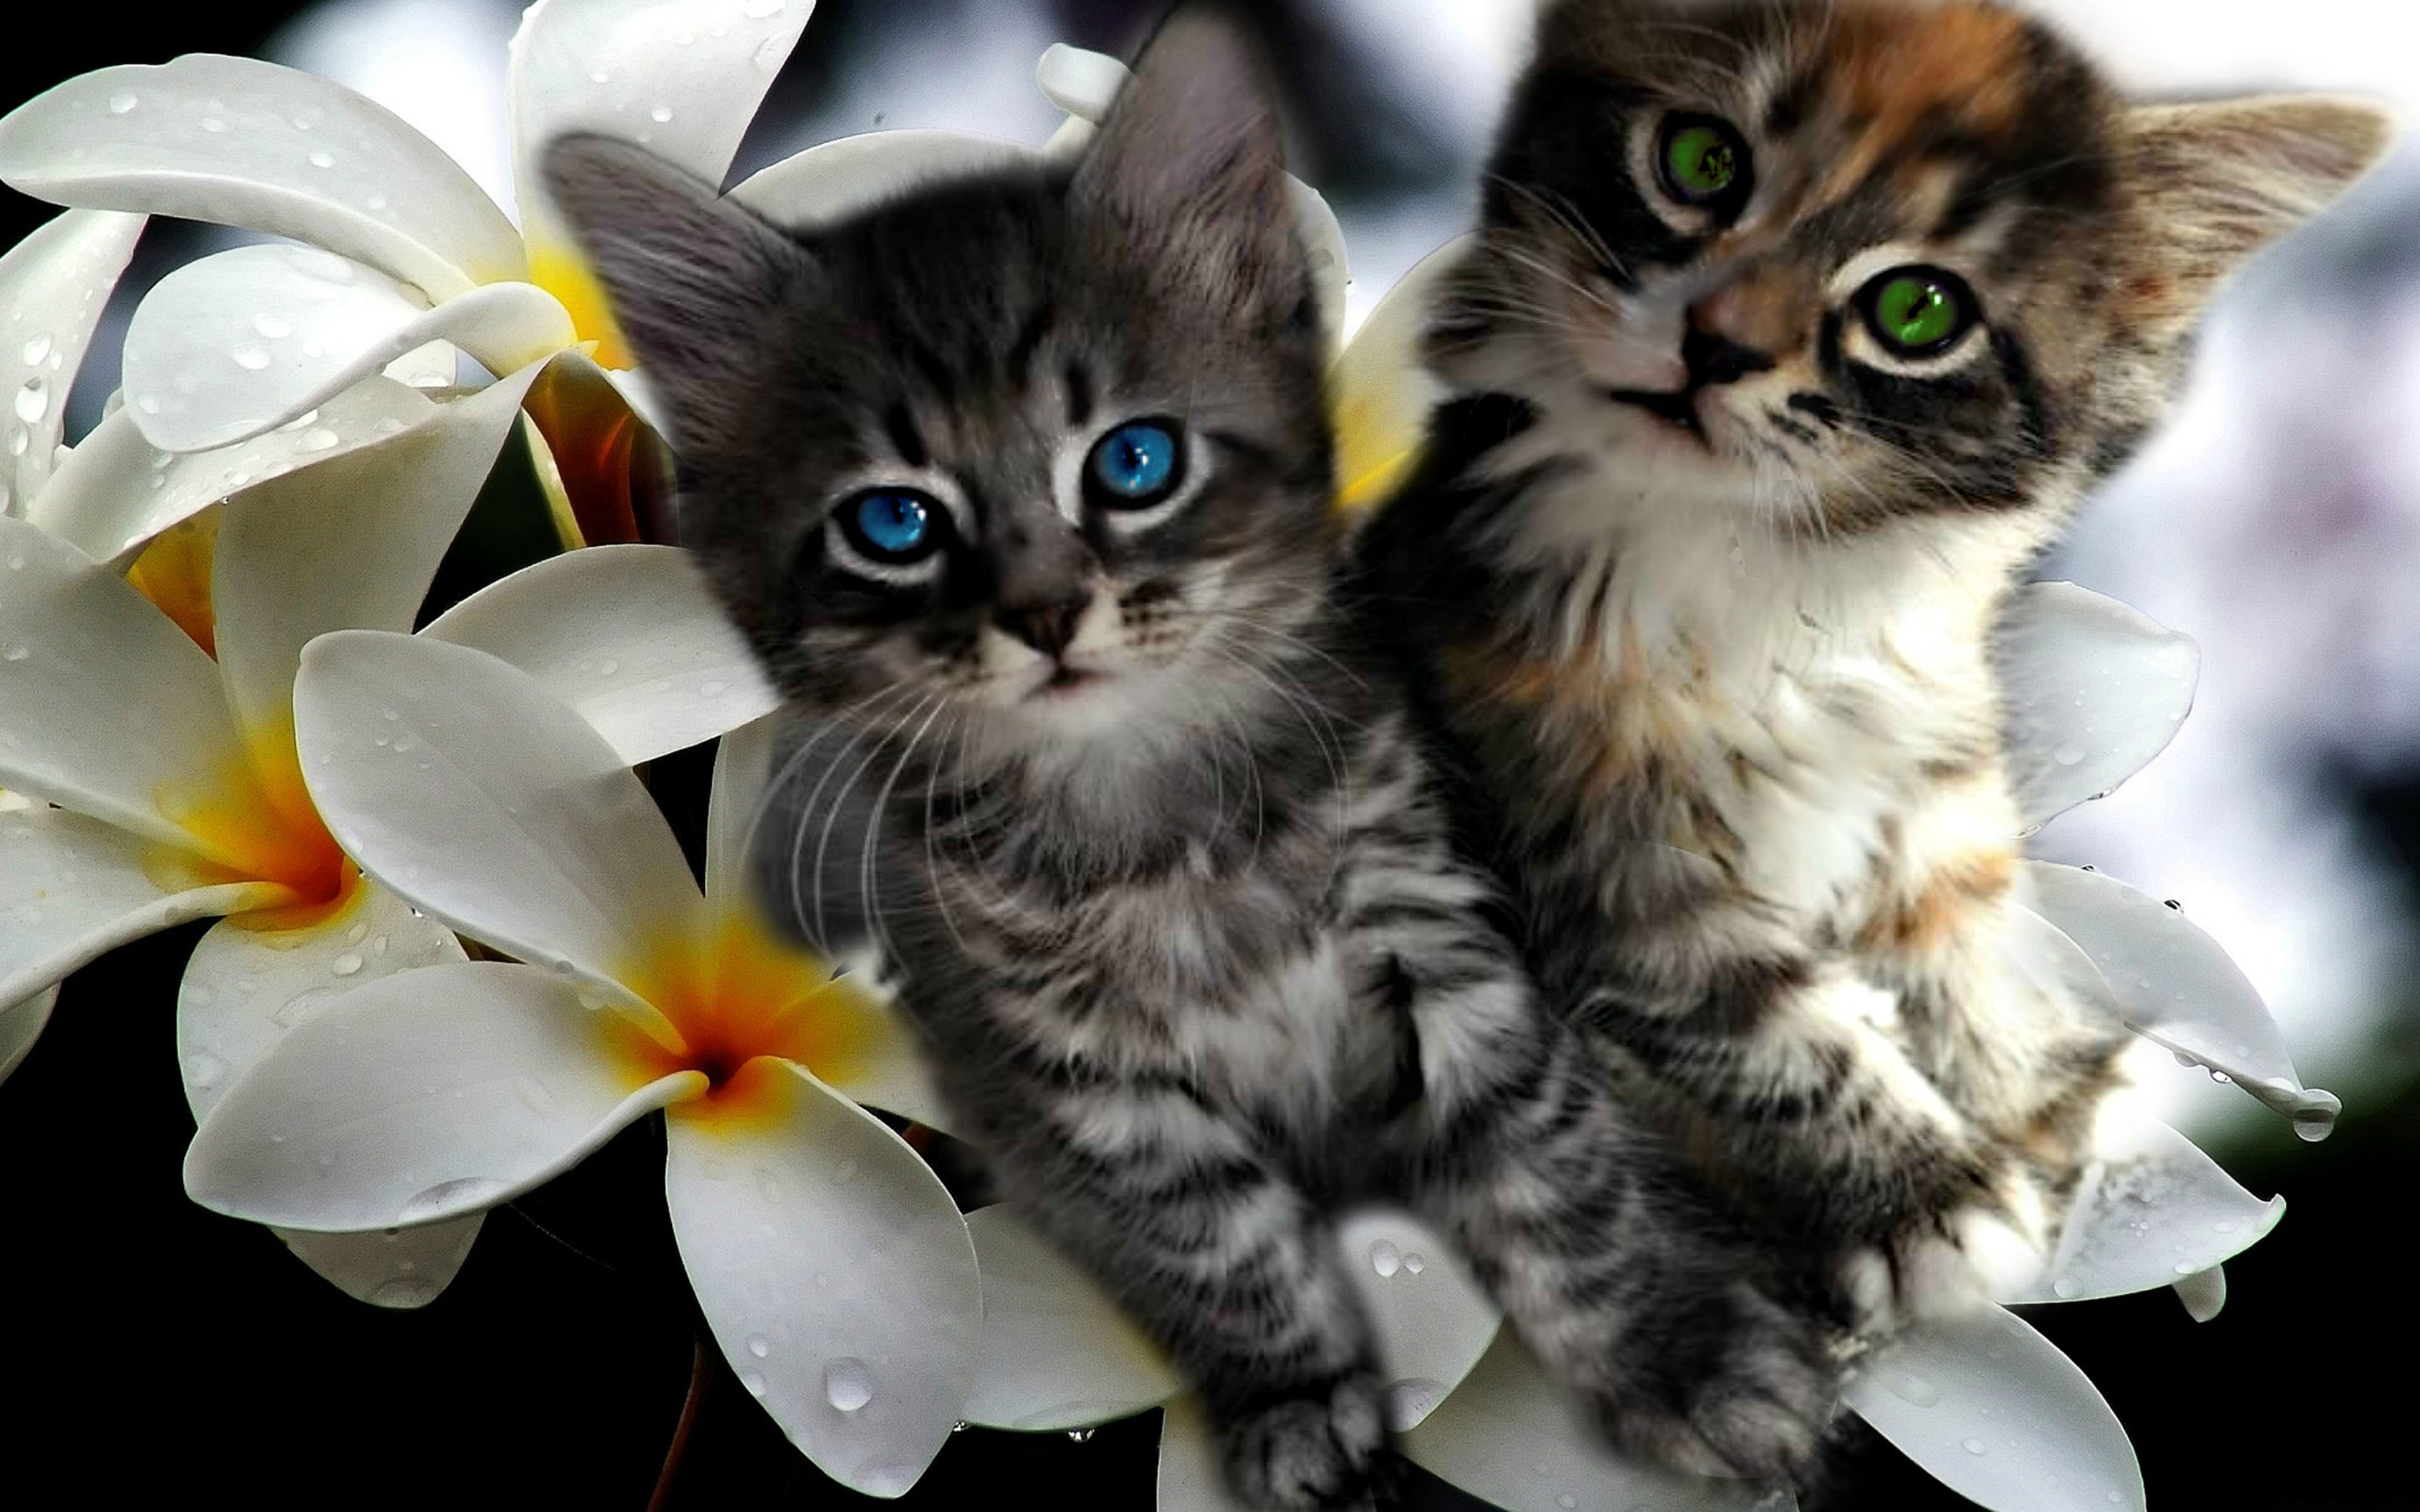 Cute Lock Screen Wallpapers For Iphone Kittens Plumeria For Desktop Background Widescreen